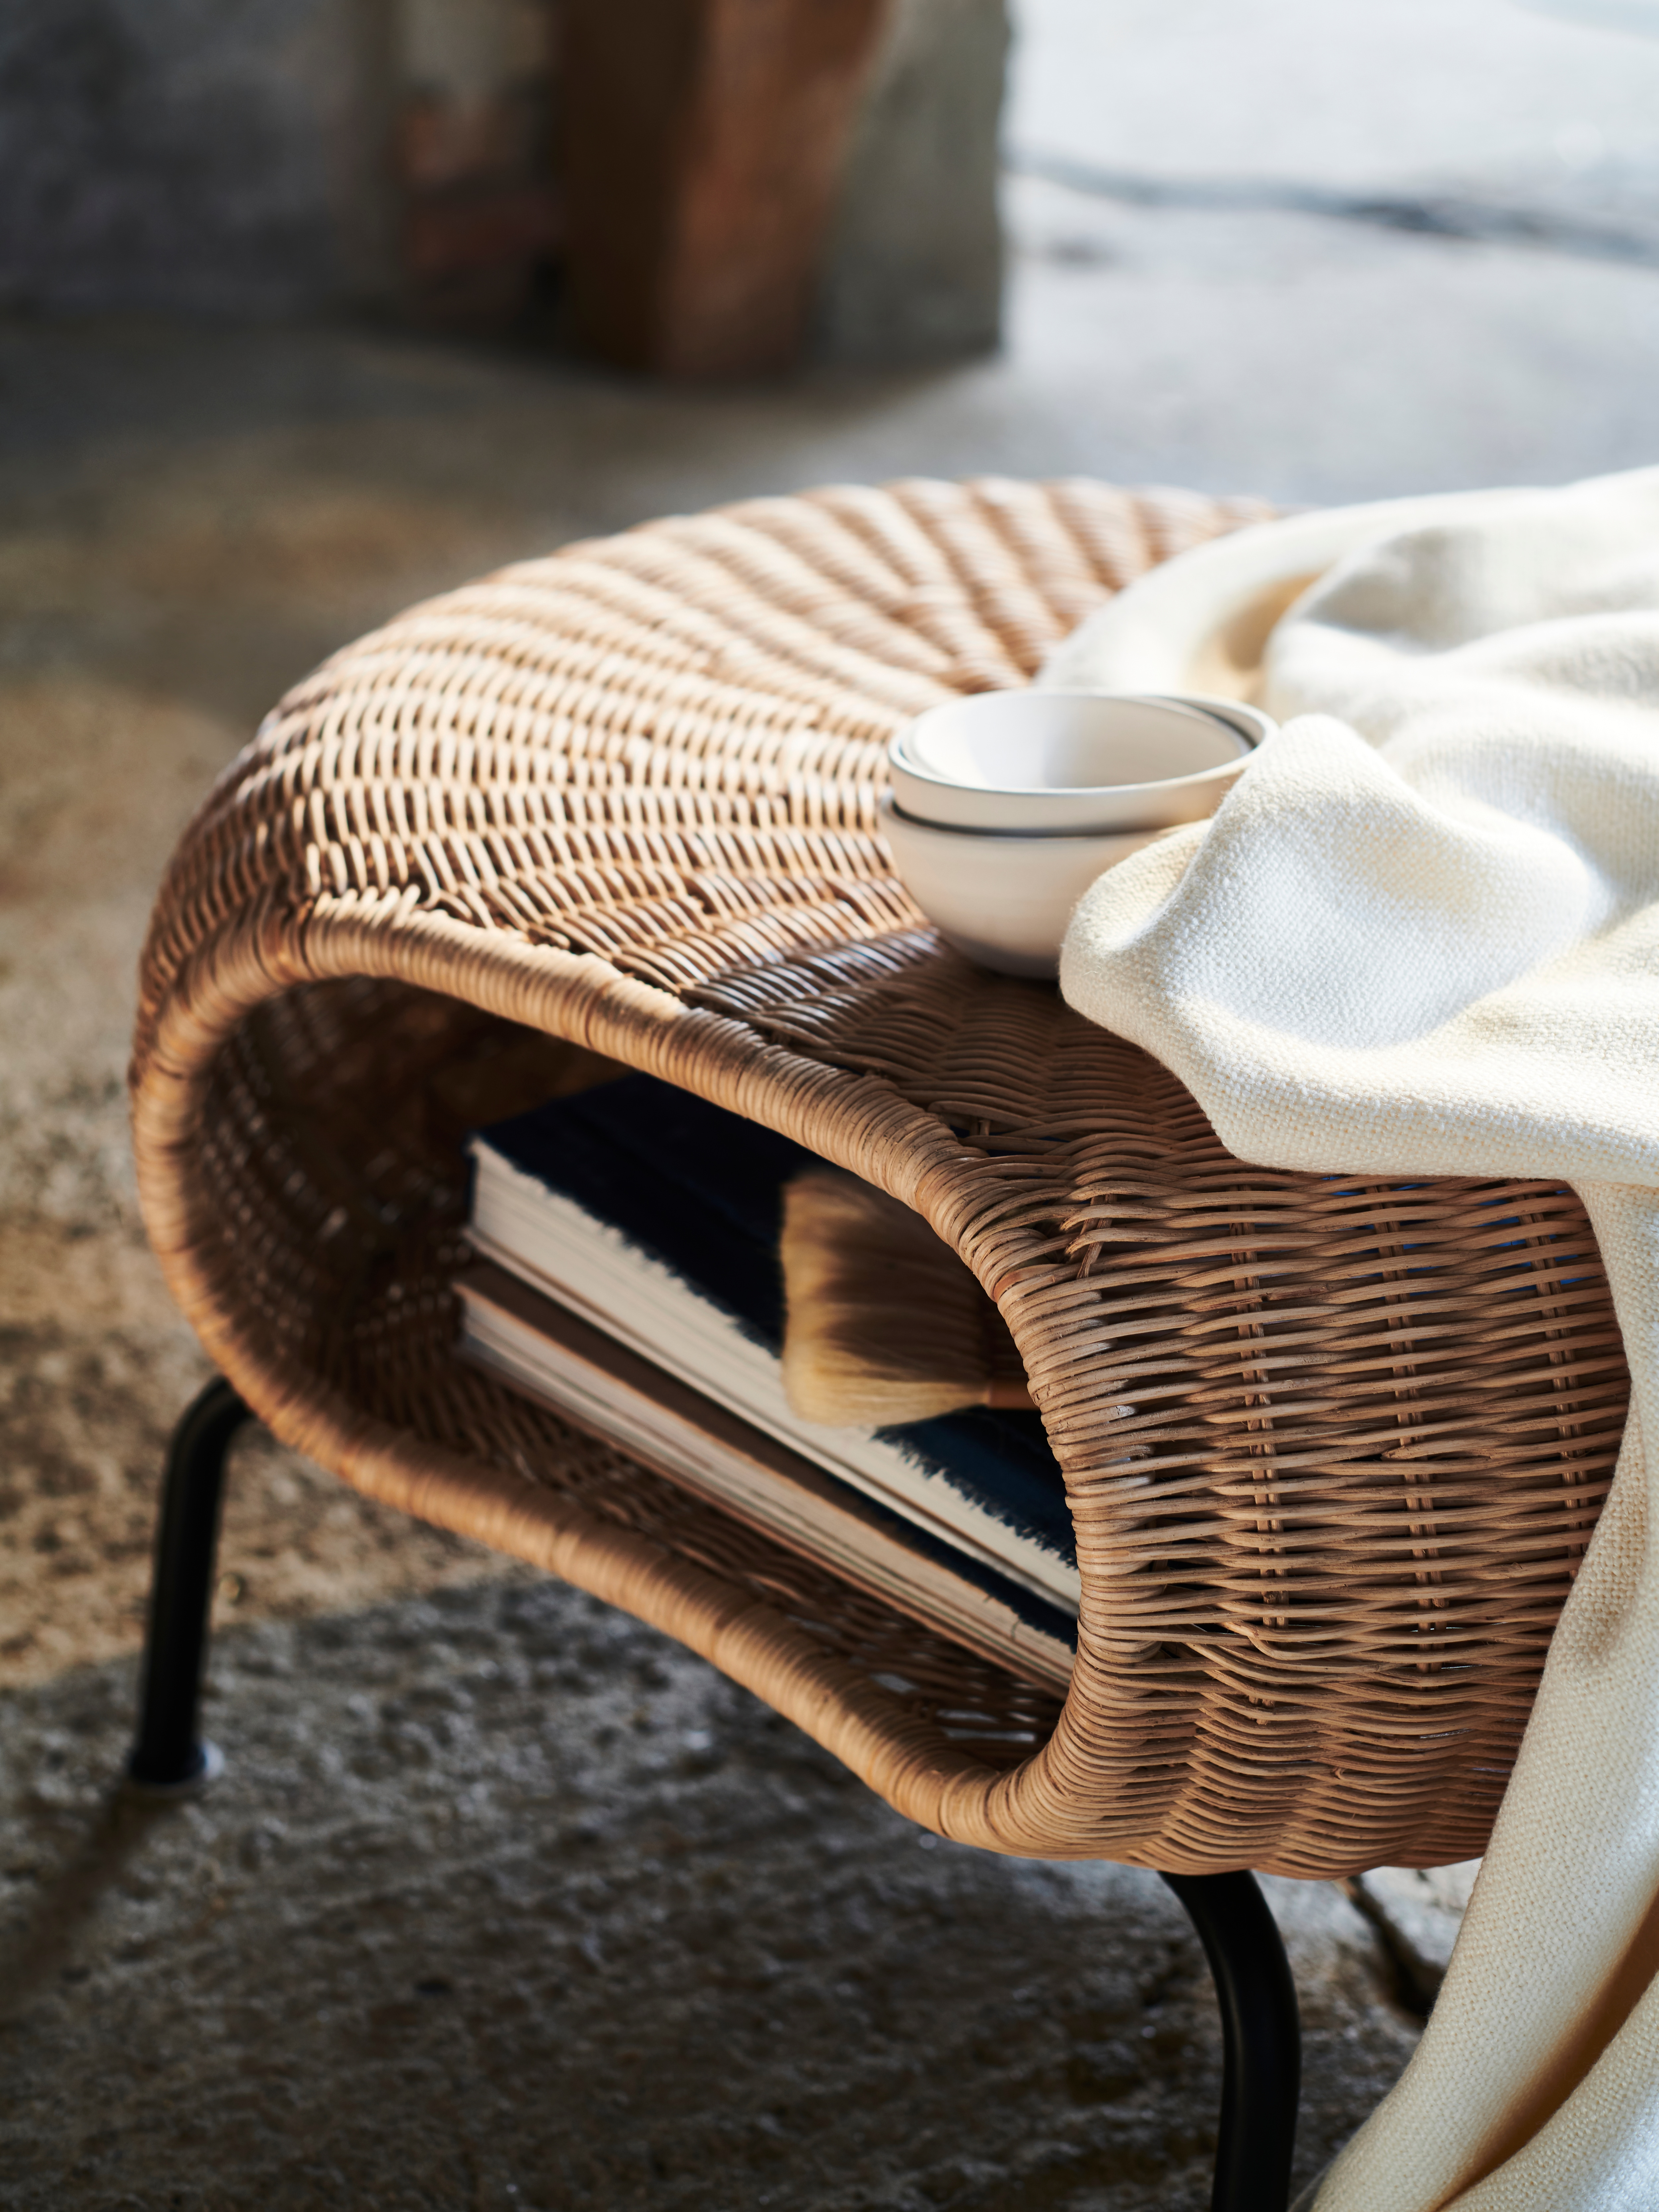 A close-up of a GAMLEHULT footstool with storage in hand-woven rattan with books on the shelf and small dishes on top.